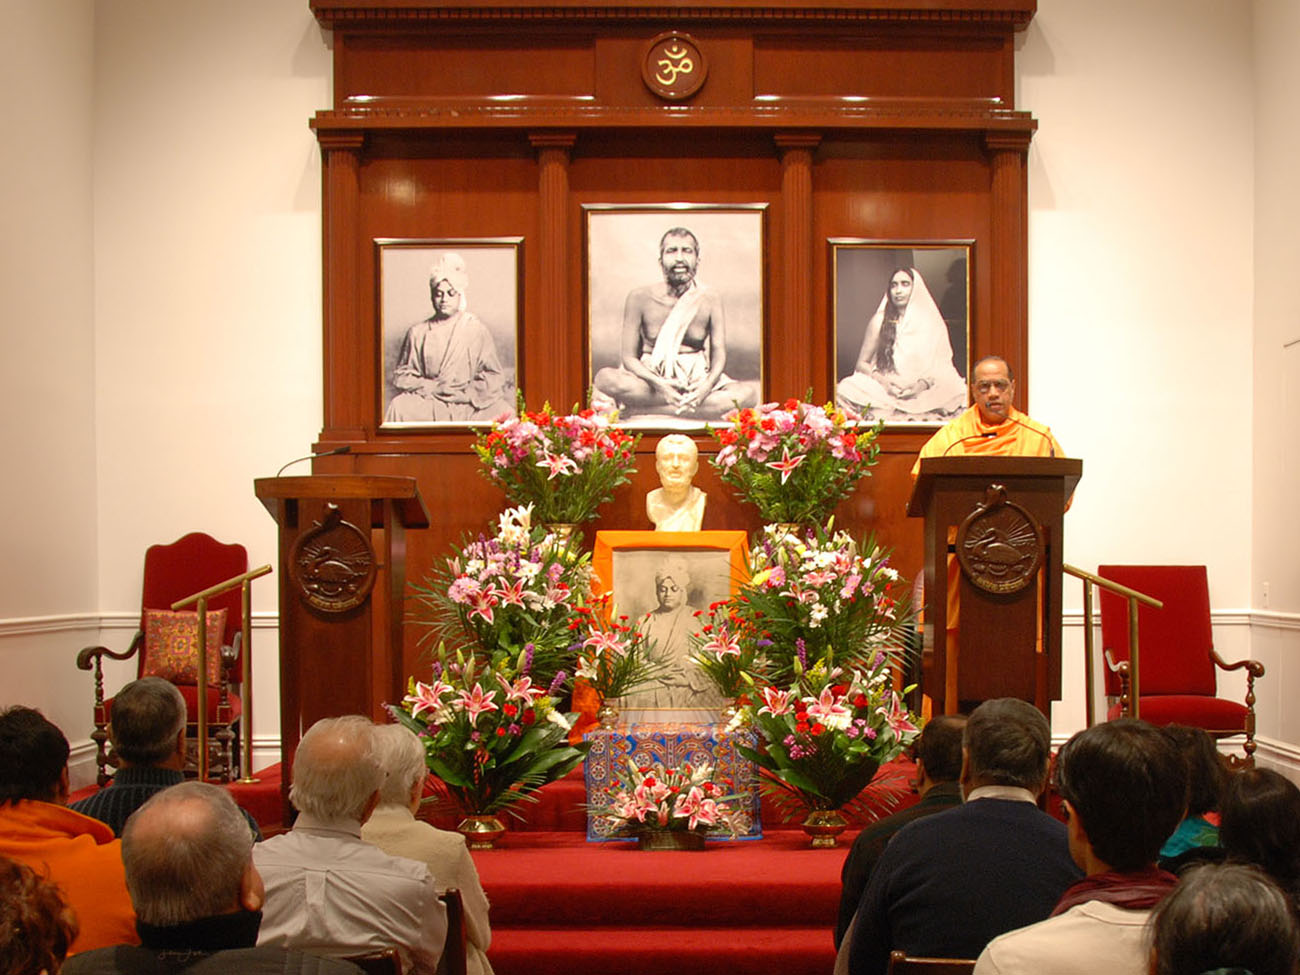 altar decorated for Swami Vivekananda's birthday celebration